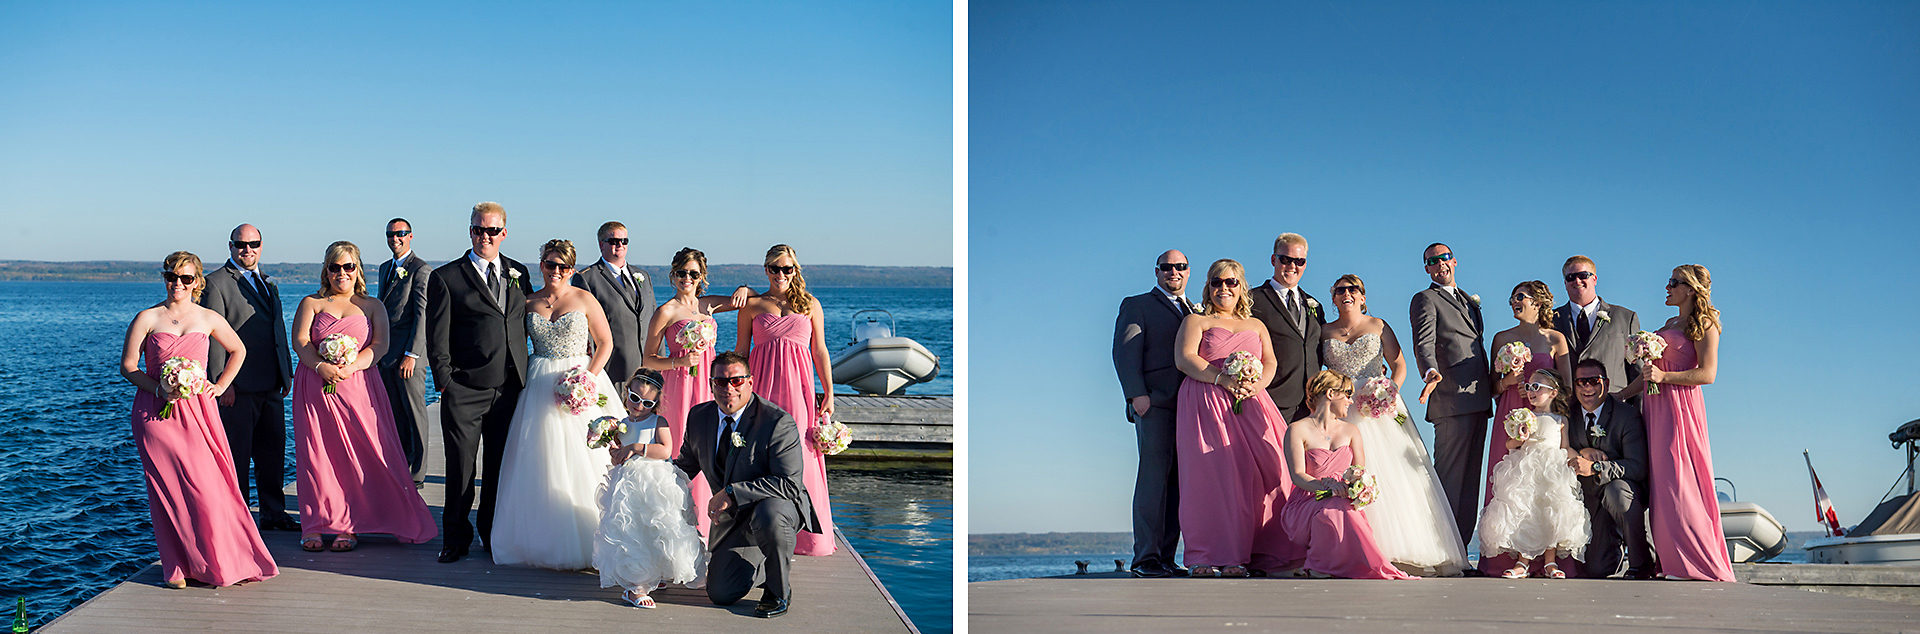 Wes & Mallory | Cobble Beach Wedding | Owen Sound Wedding Photography 23